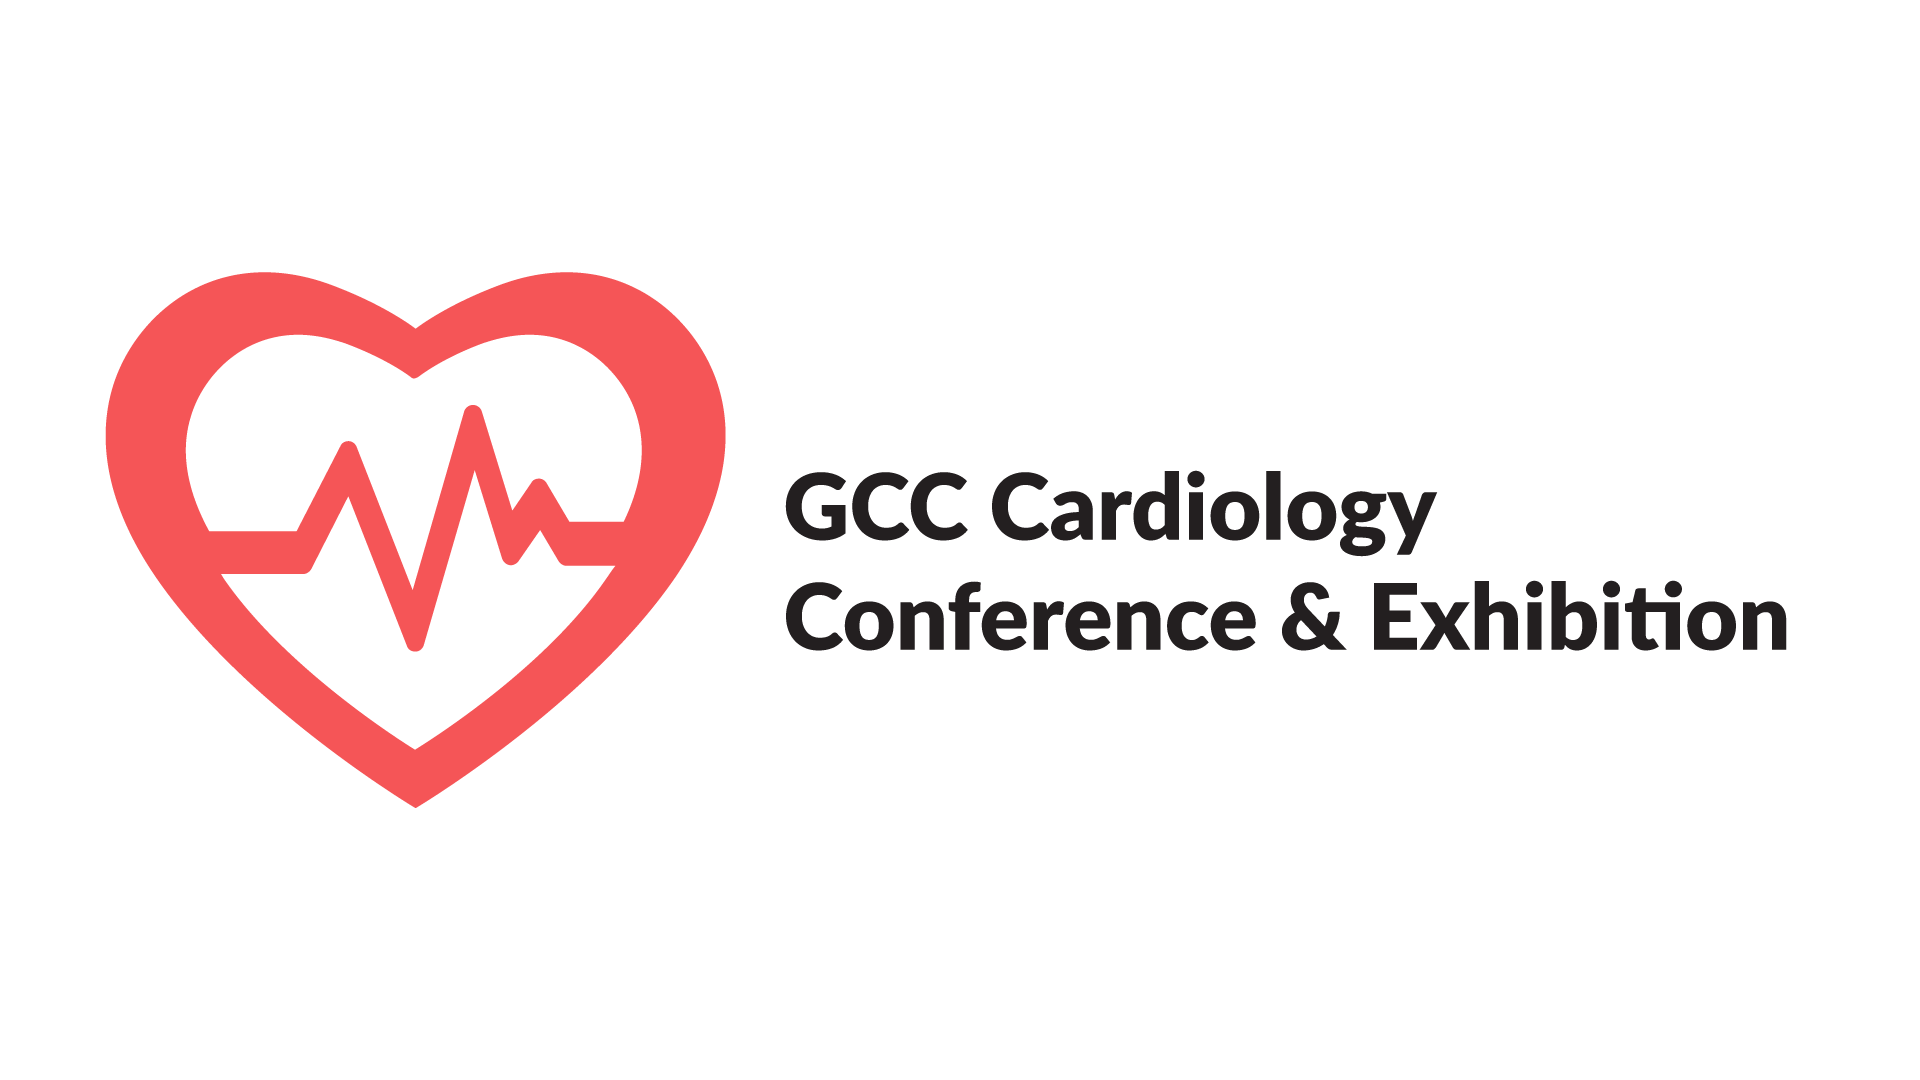 GCC Cardiology Conference and Exhibition - Logo